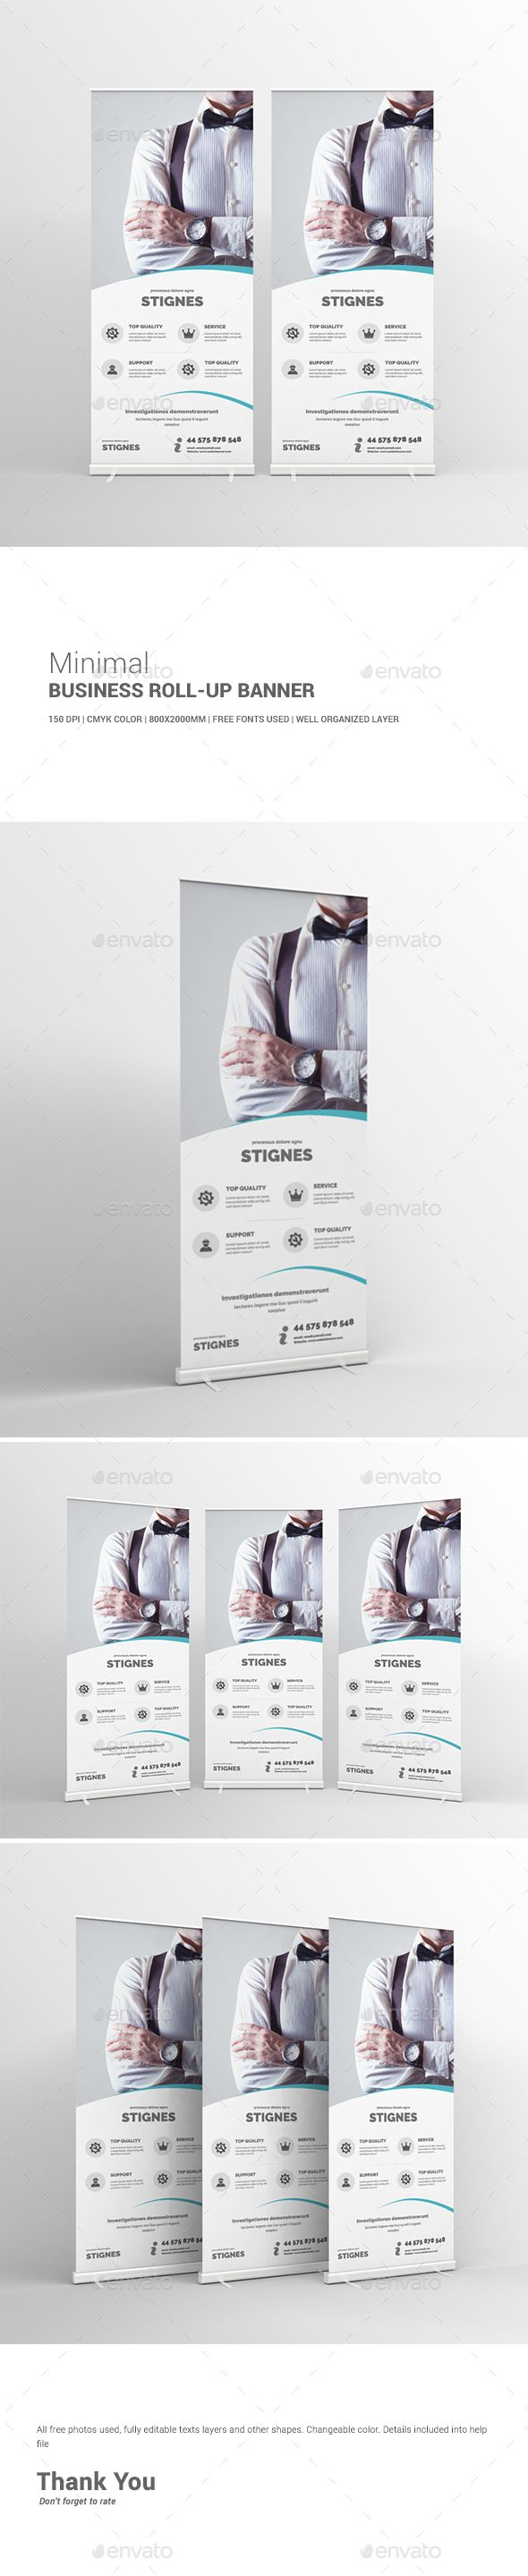 Minimal Business Roll-Up Banner Template PSD #design Download: http://graphicriver.net/item/minimal-business-rollup-banner/13343039?ref=ksioks